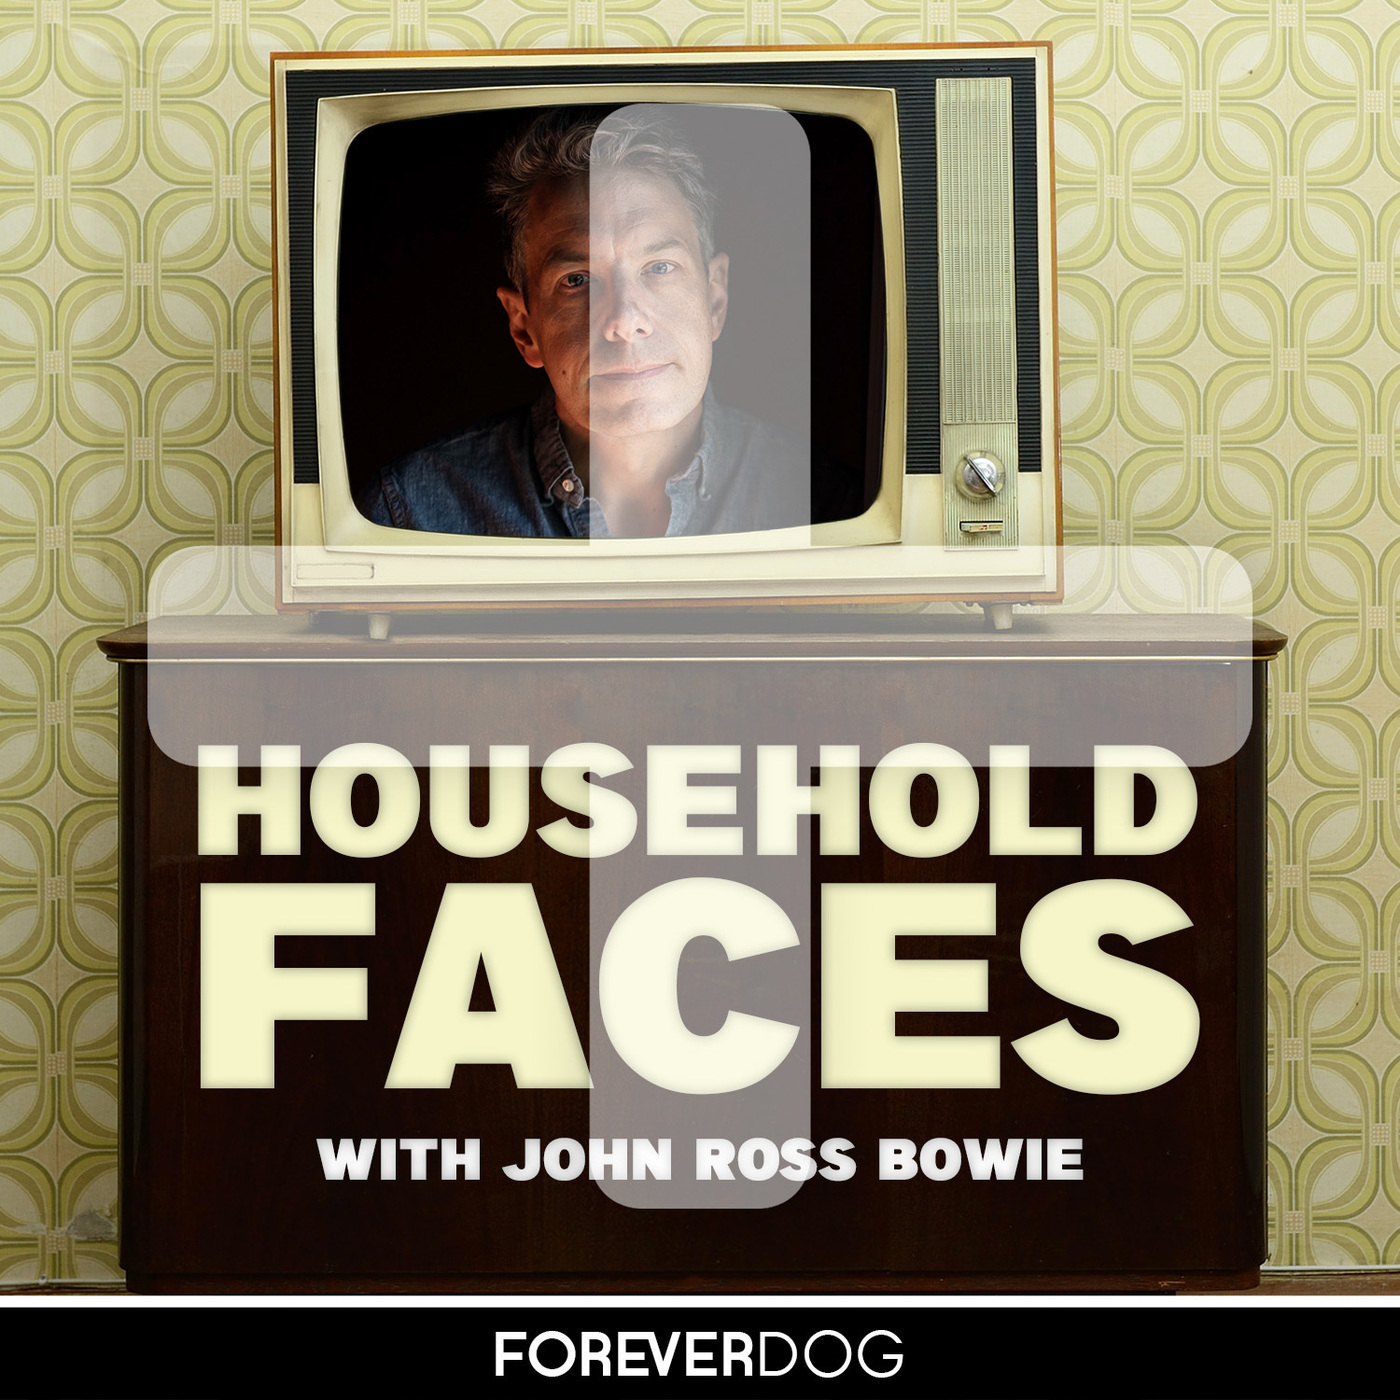 Household Faces with John Ross Bowie PLUS podcast tile